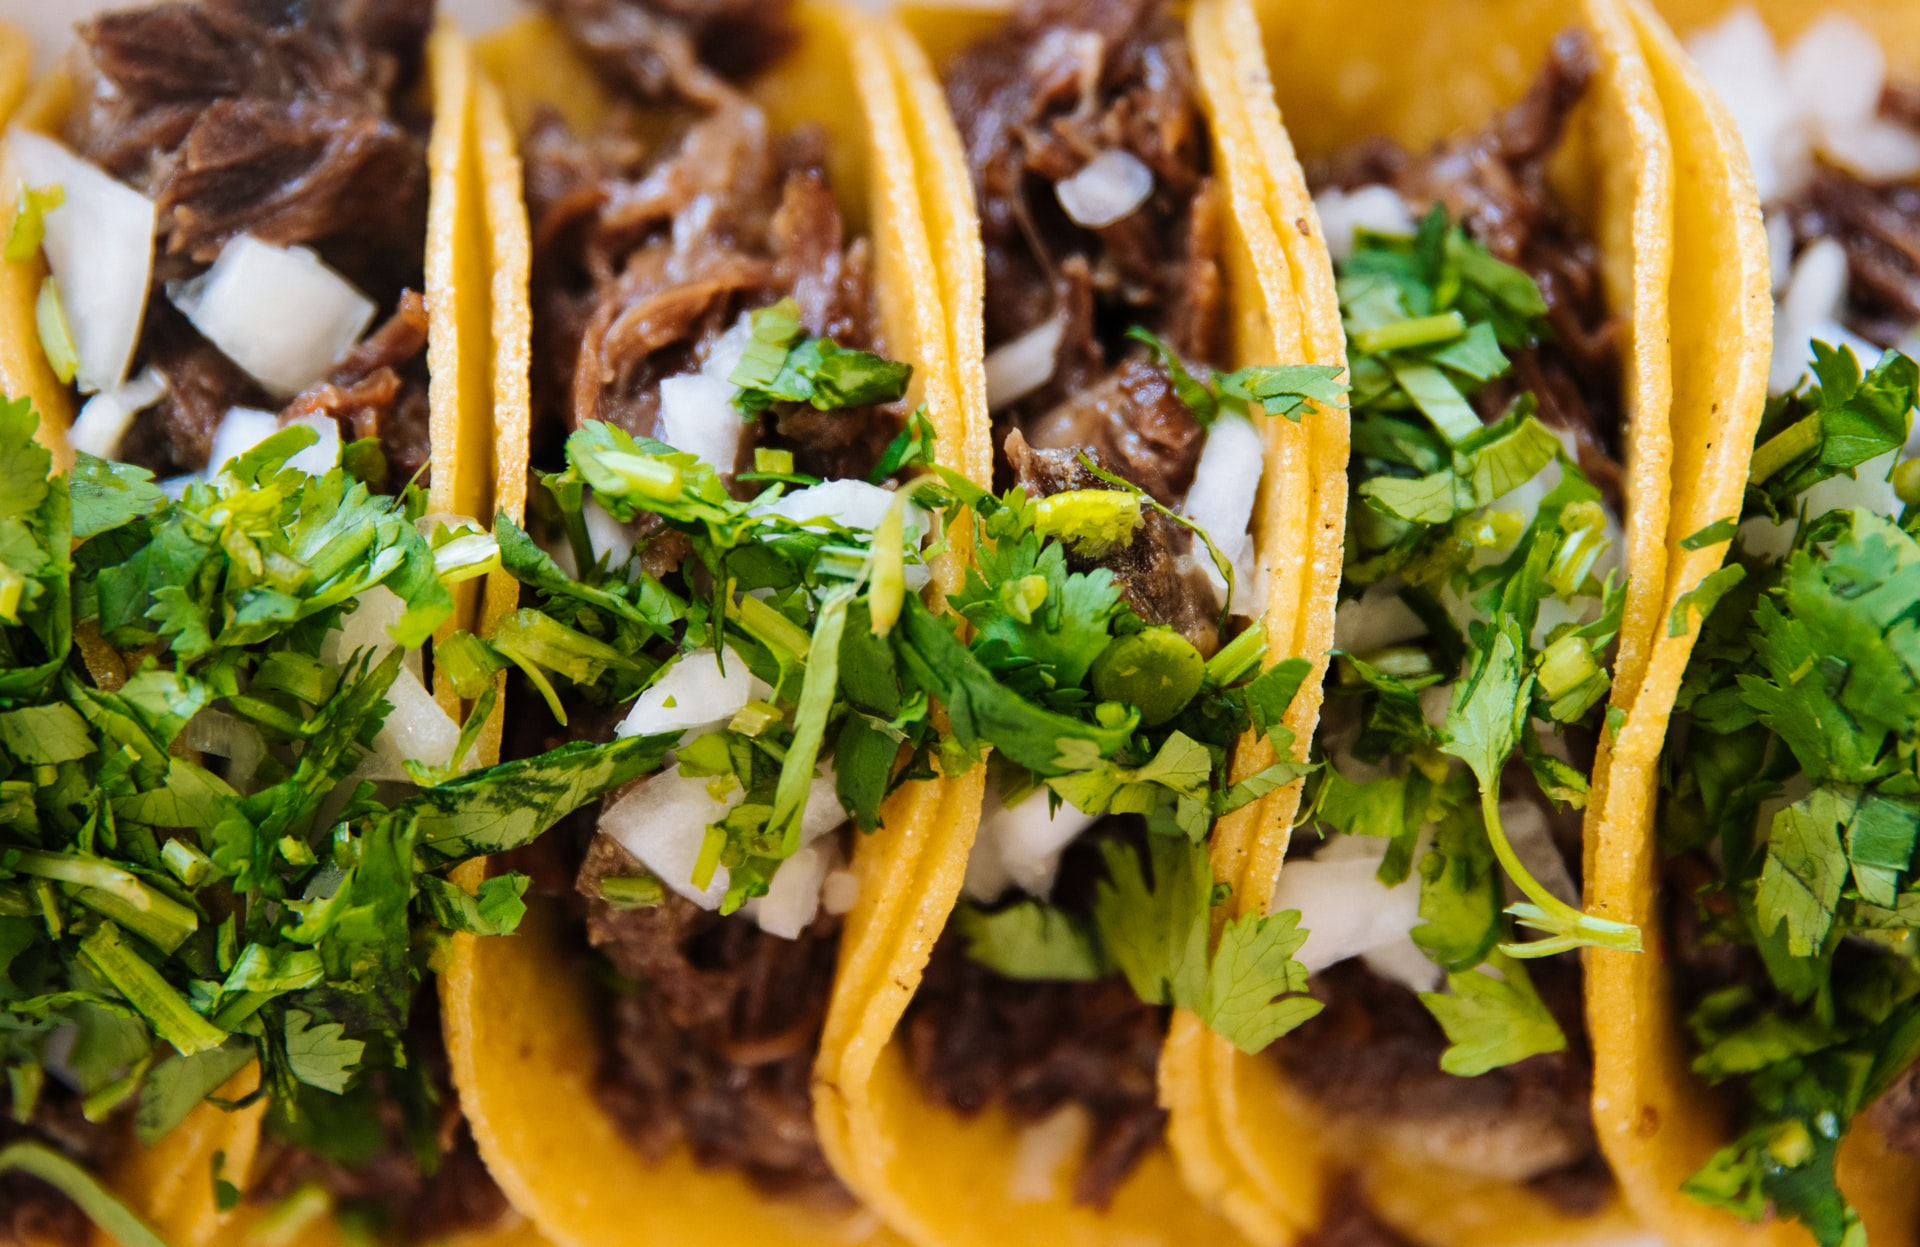 Row of soft shell tacos with meat, cilantro, and onions